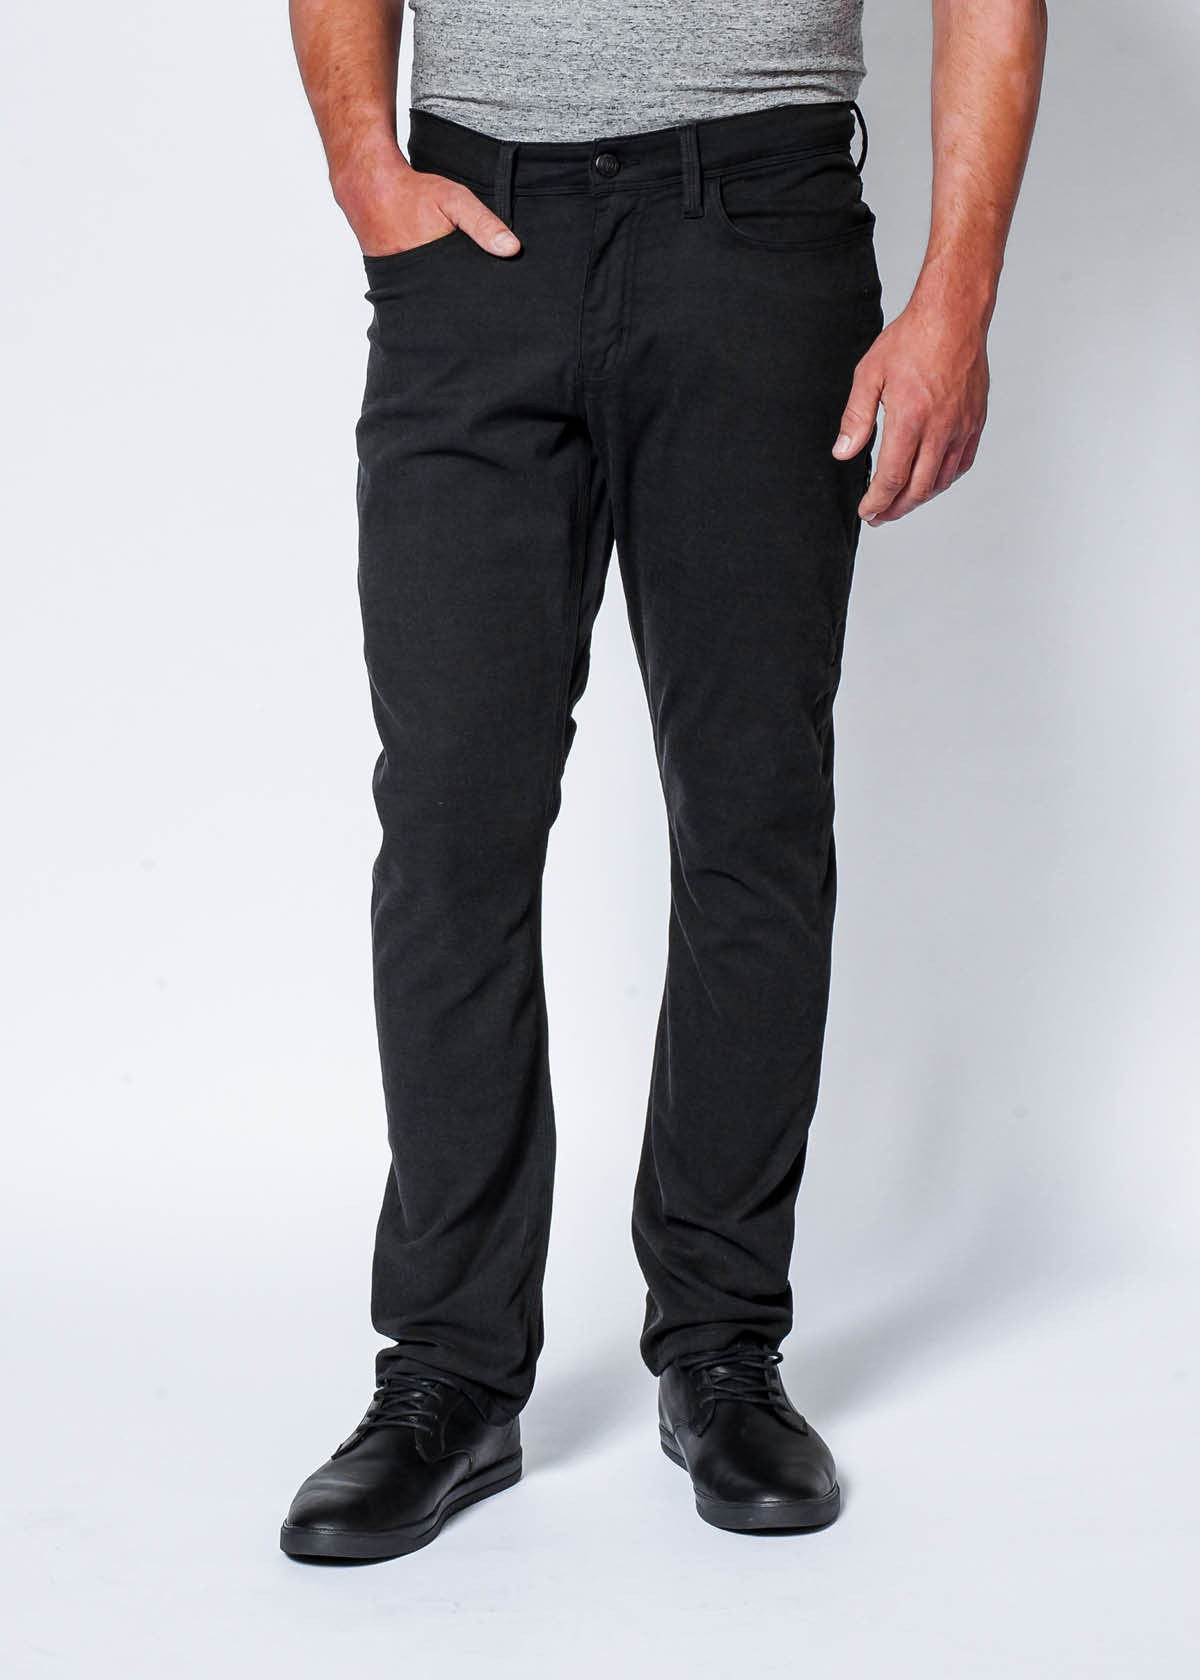 Live Lite AC Pant in Black by DUER